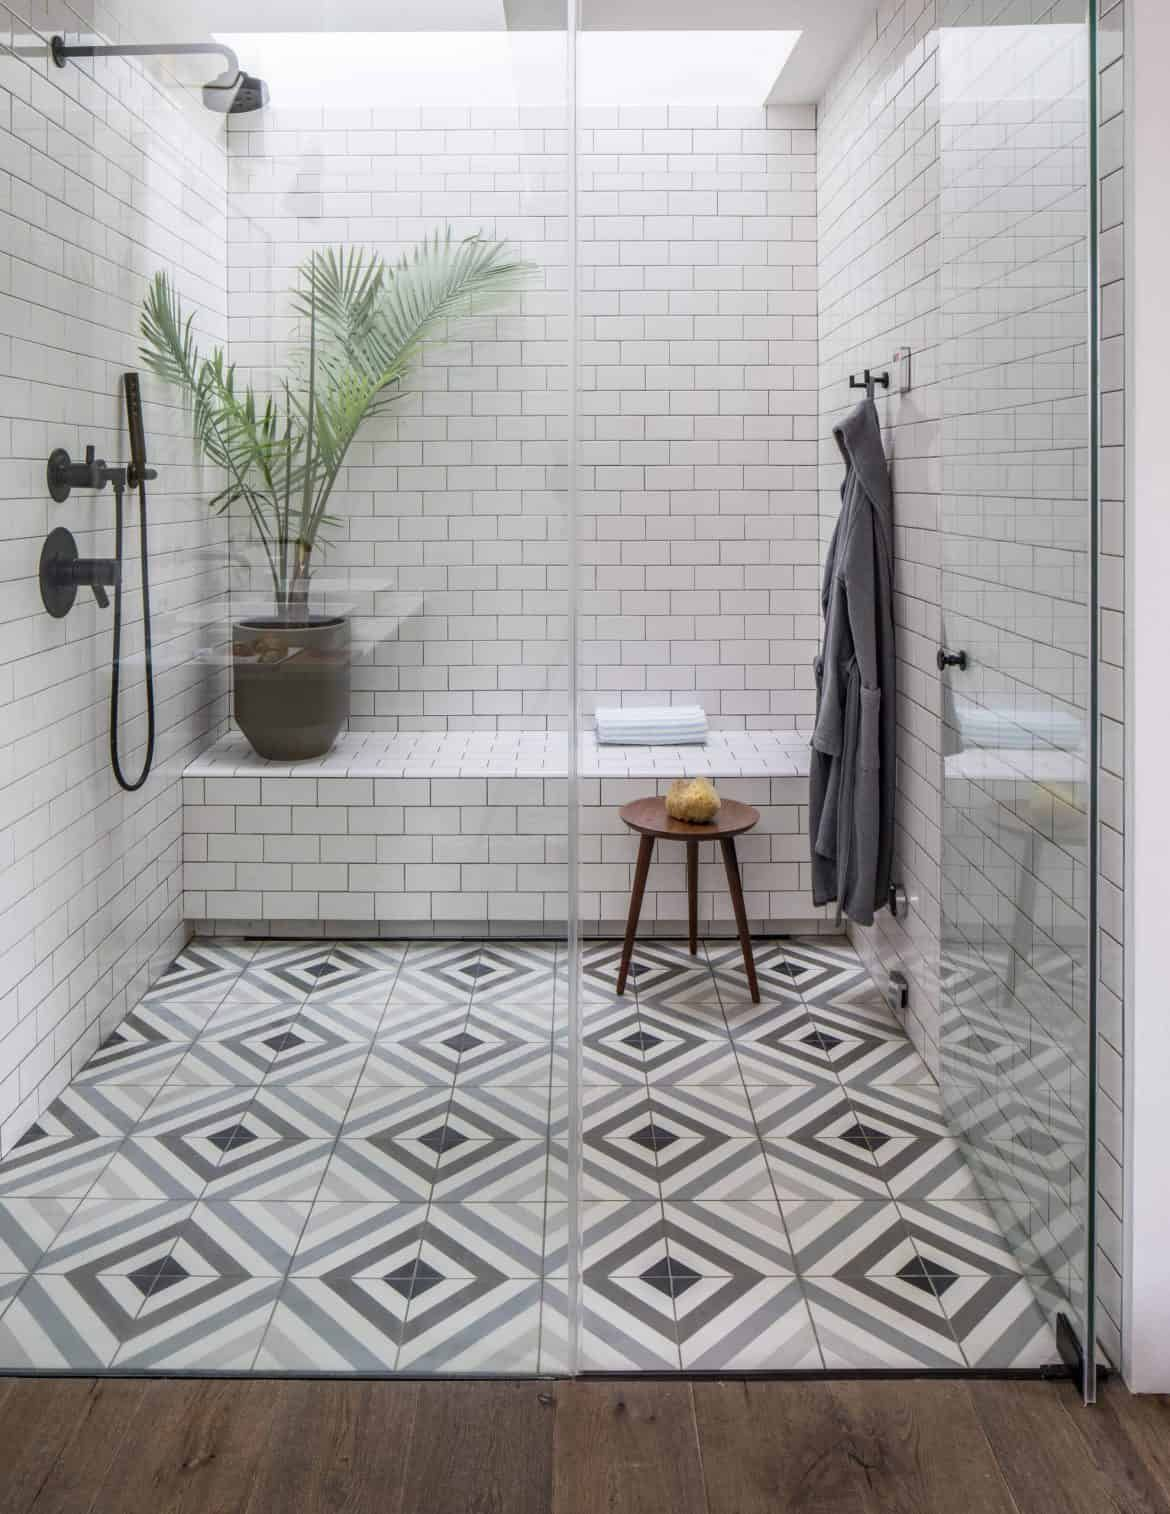 44 Modern Shower Tile Ideas And Designs 2020 Edition In 2020 Modern Shower Tile Tile Remodel Tile Bathroom